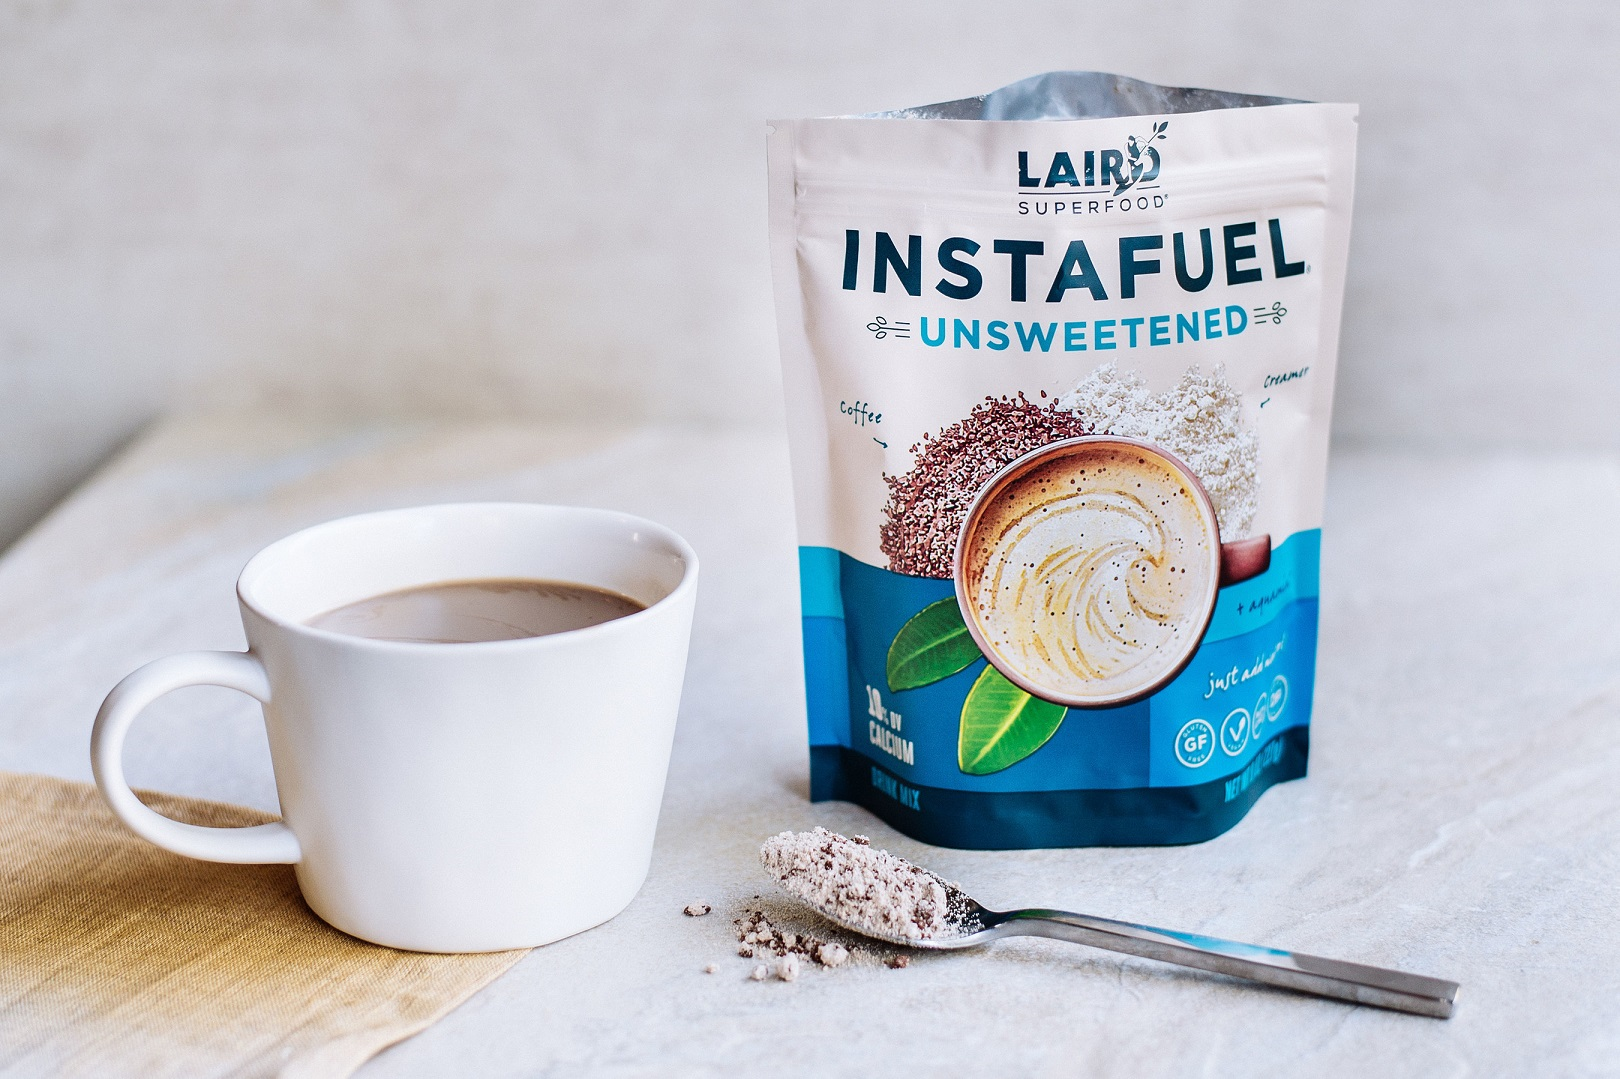 Unsweetened Instafuel - The Third Offering In The Instafuel Line